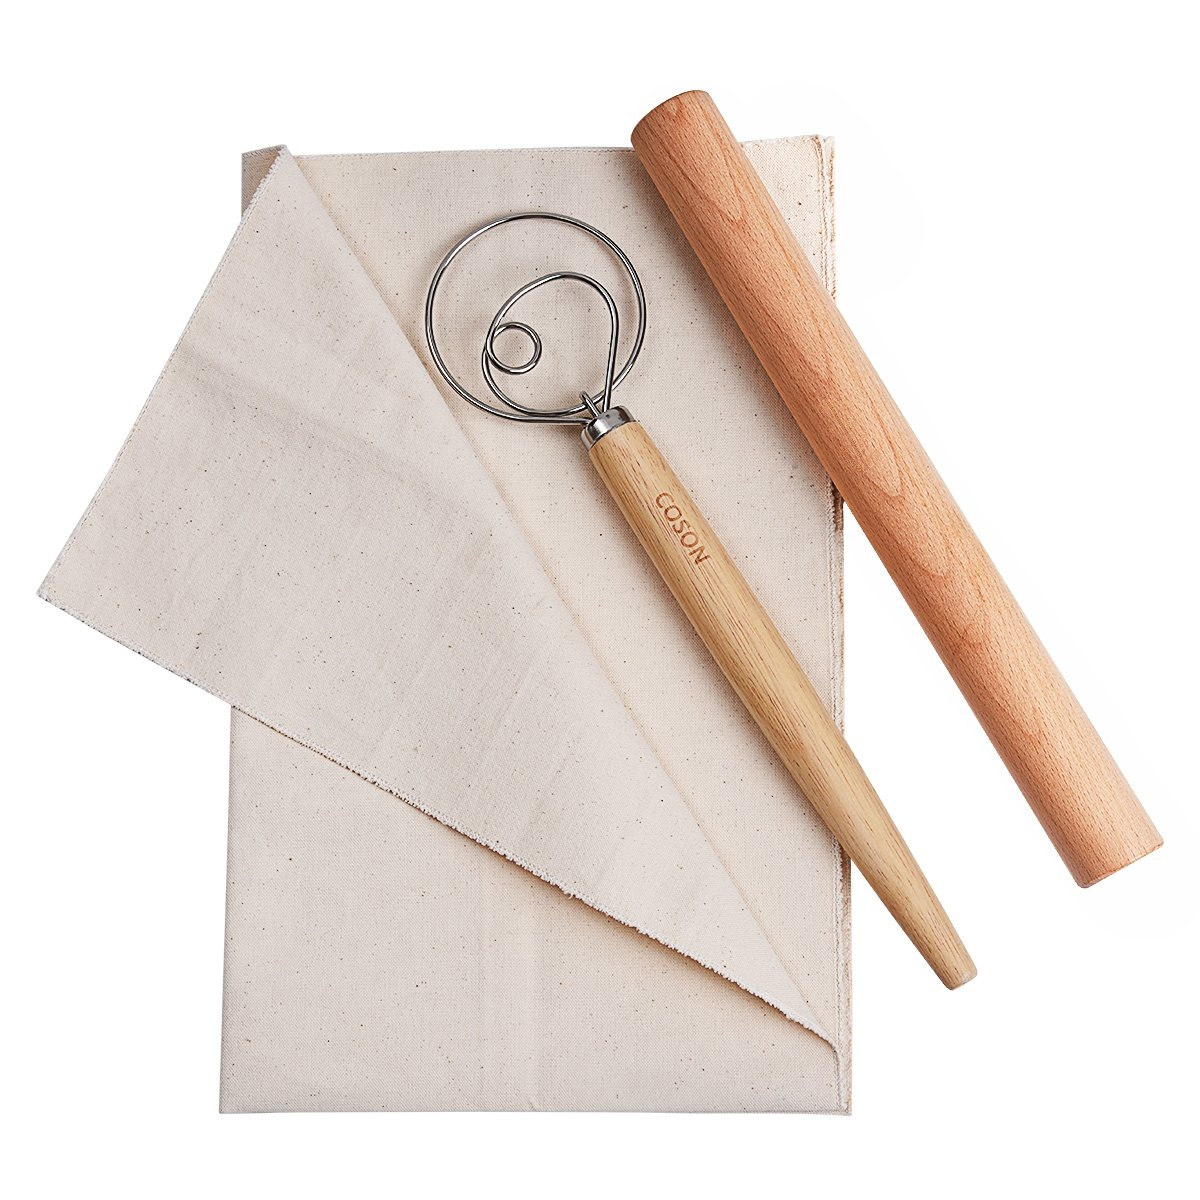 Buy Linen Flax Cloth Bread Proofing Cloth Bakers Pans